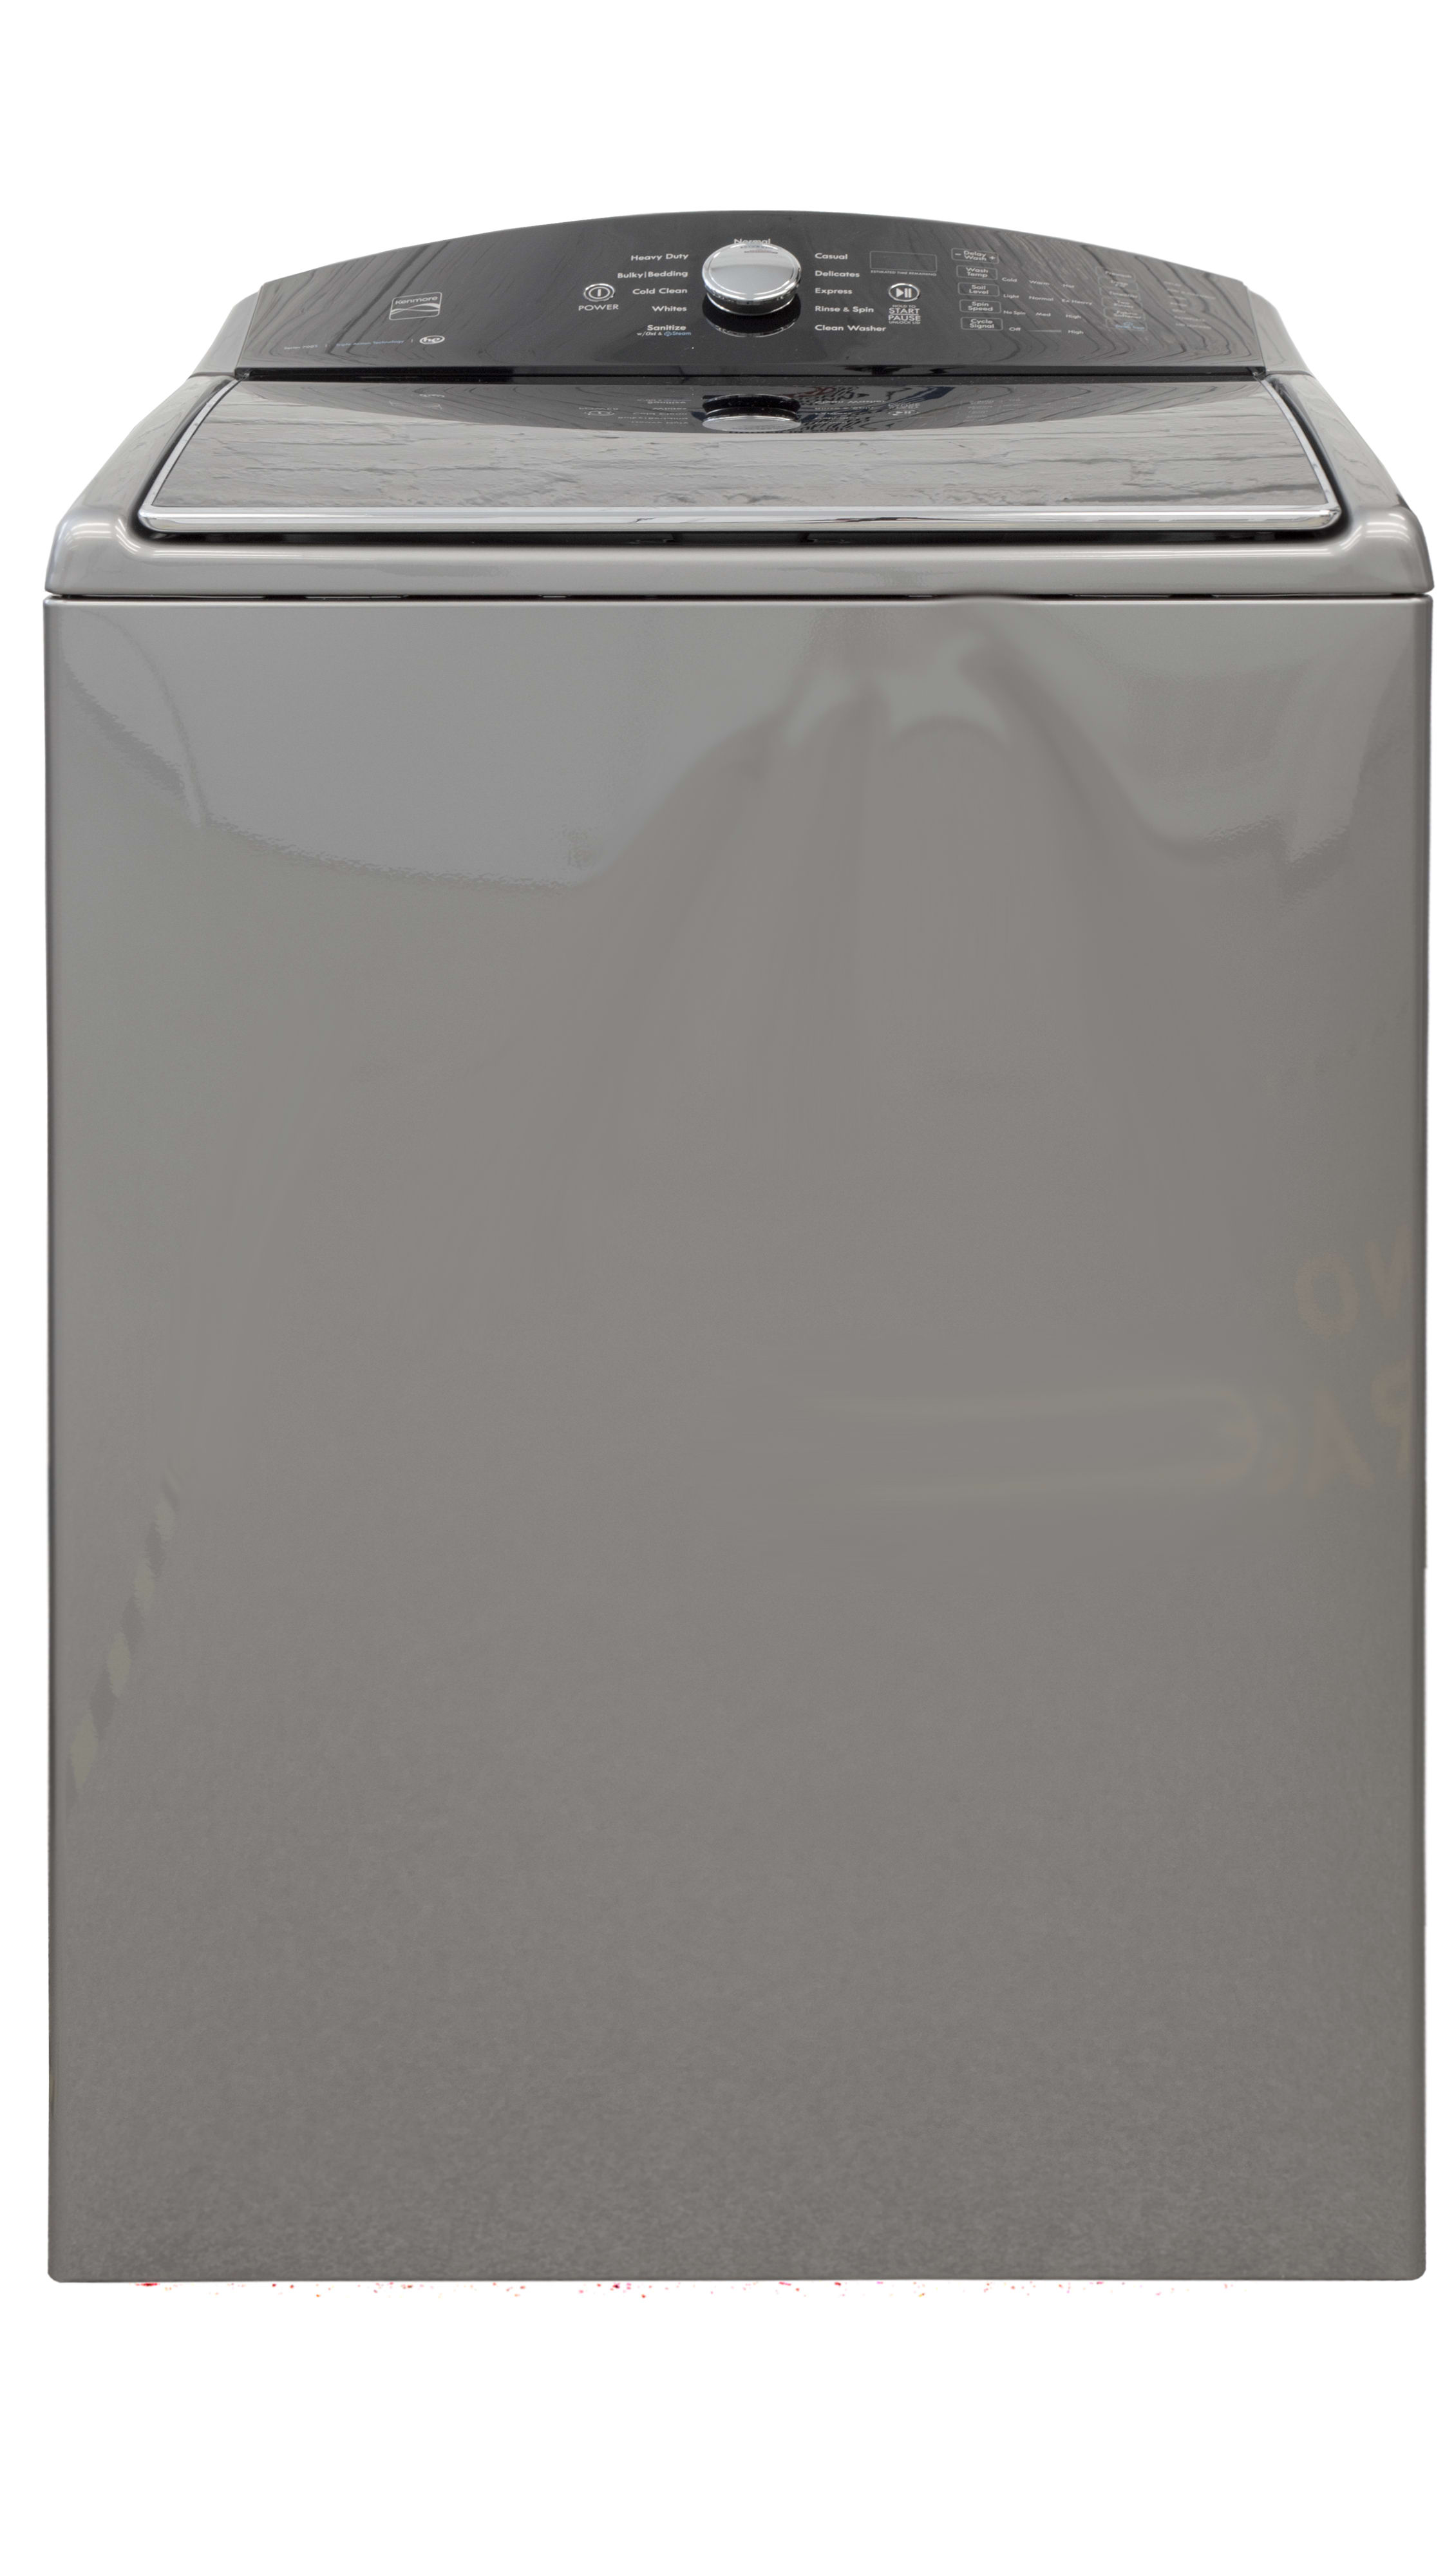 A dash of gray makes the Kenmore 29133 stand out.